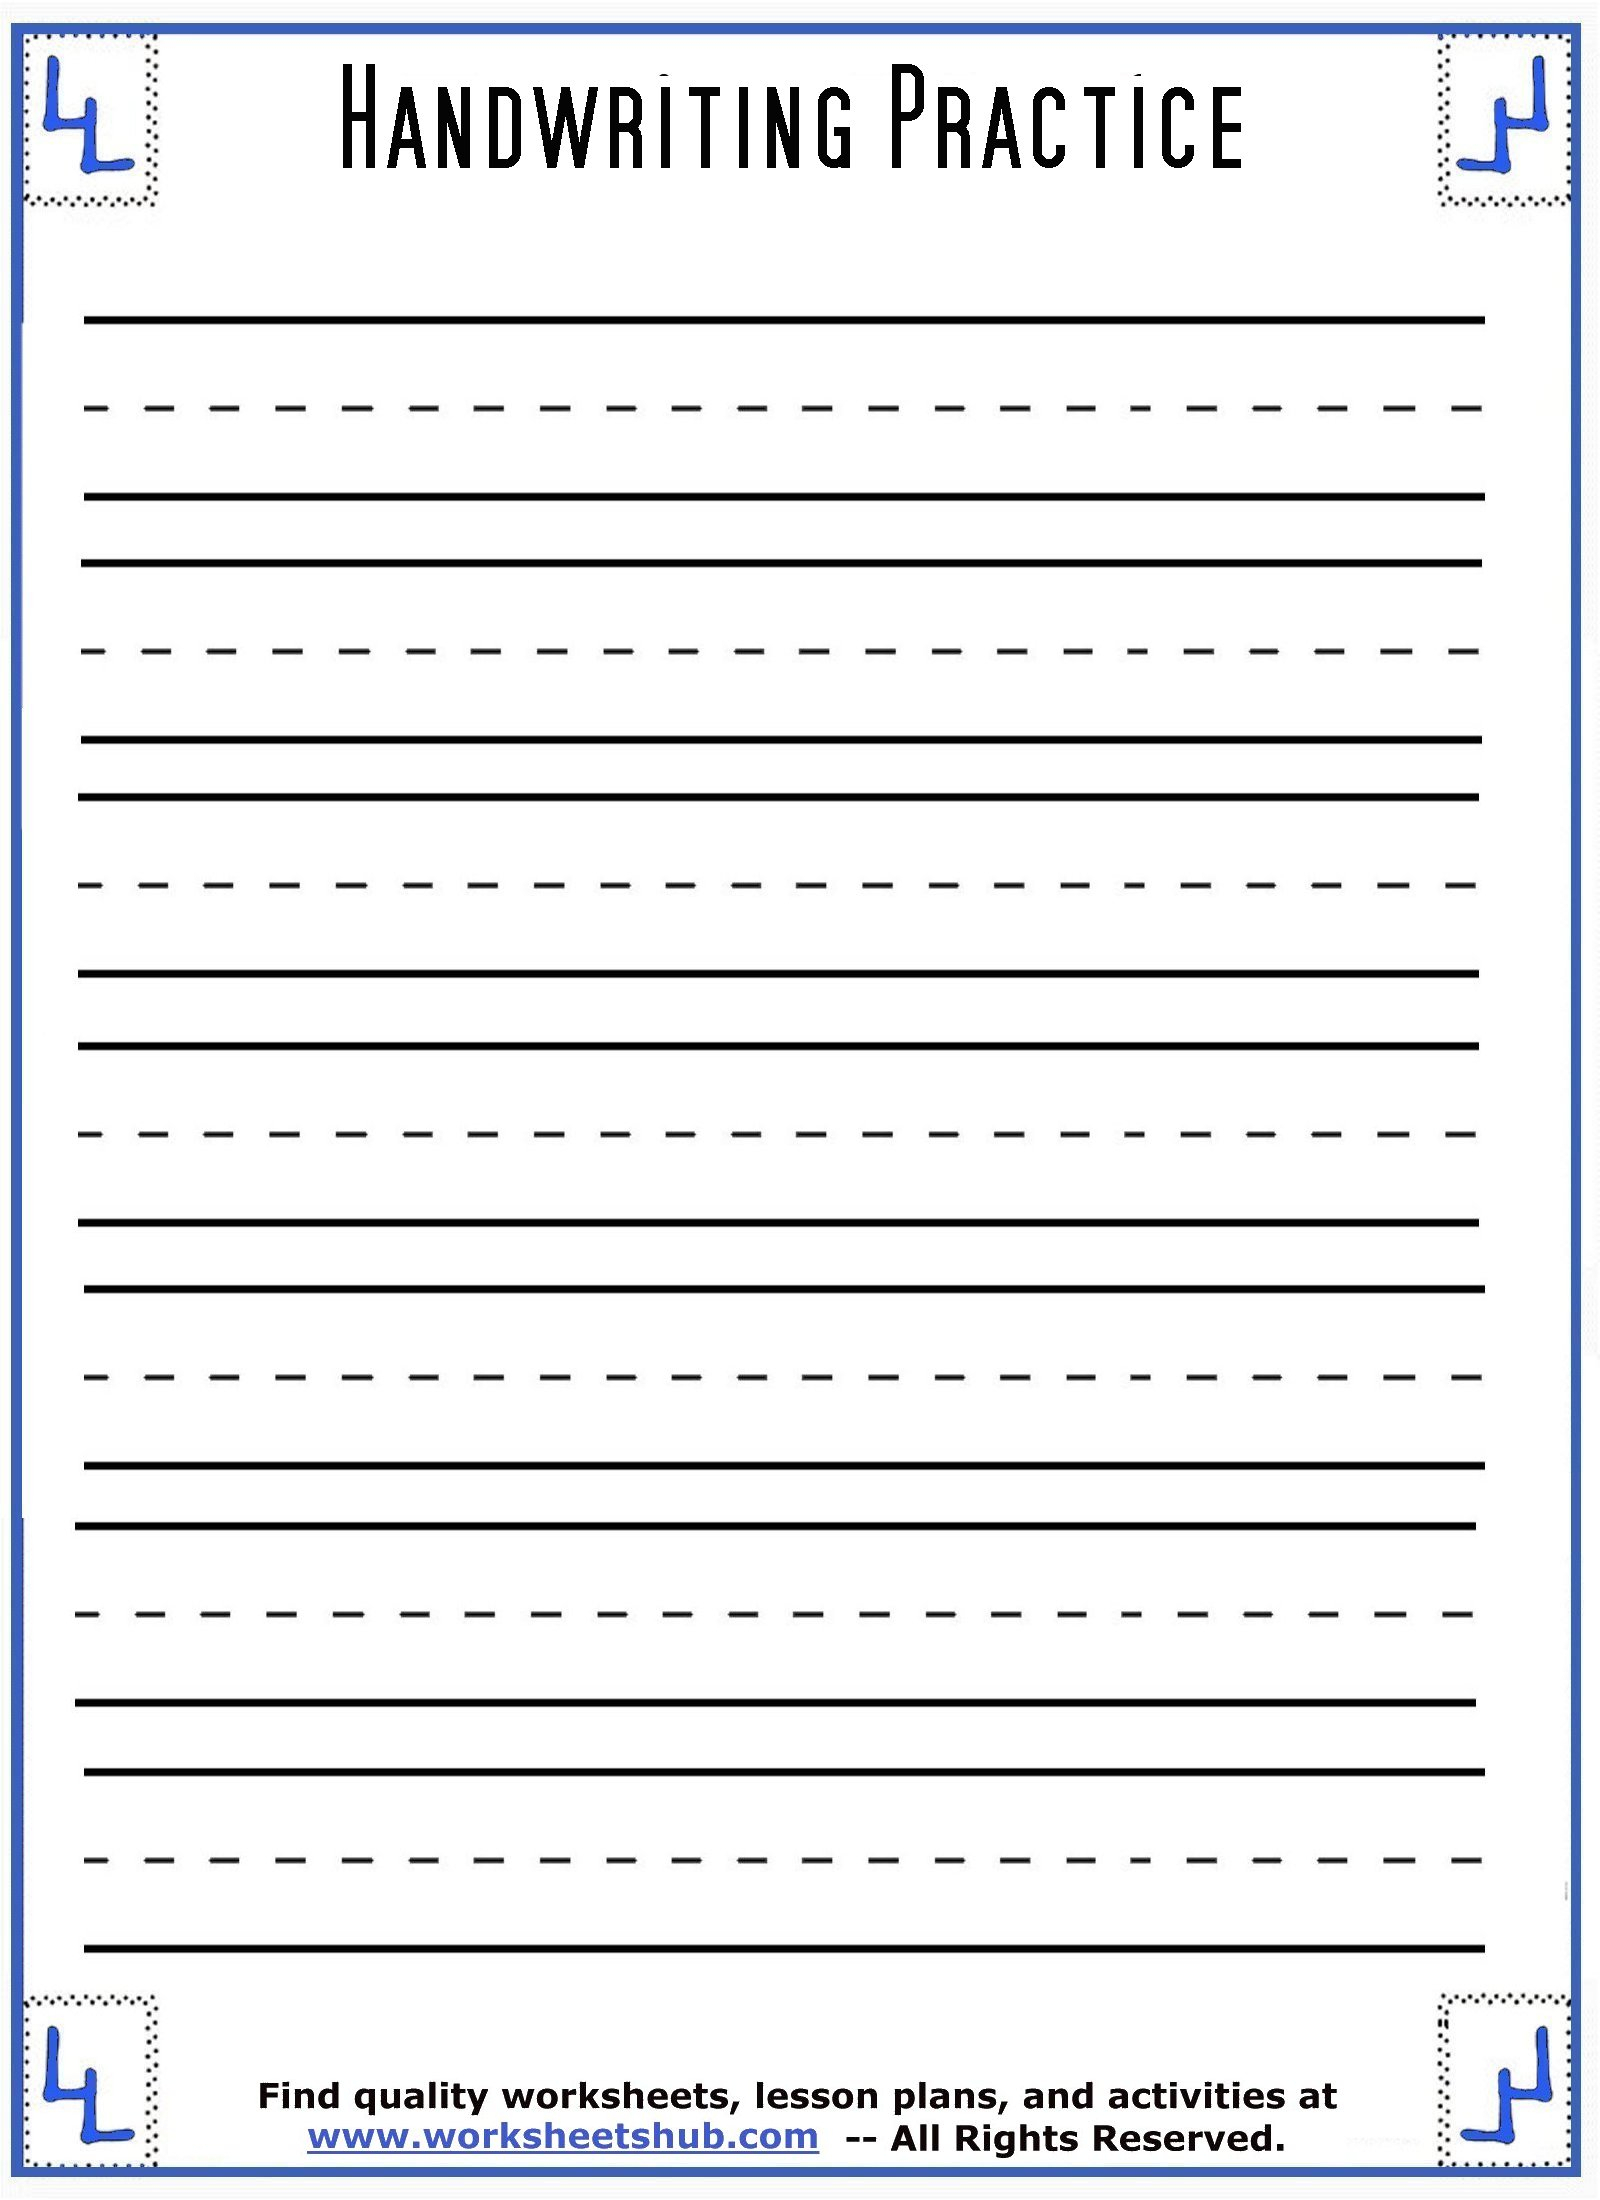 Handwriting Sheets:printable 3-Lined Paper for Letter Orientation Worksheets